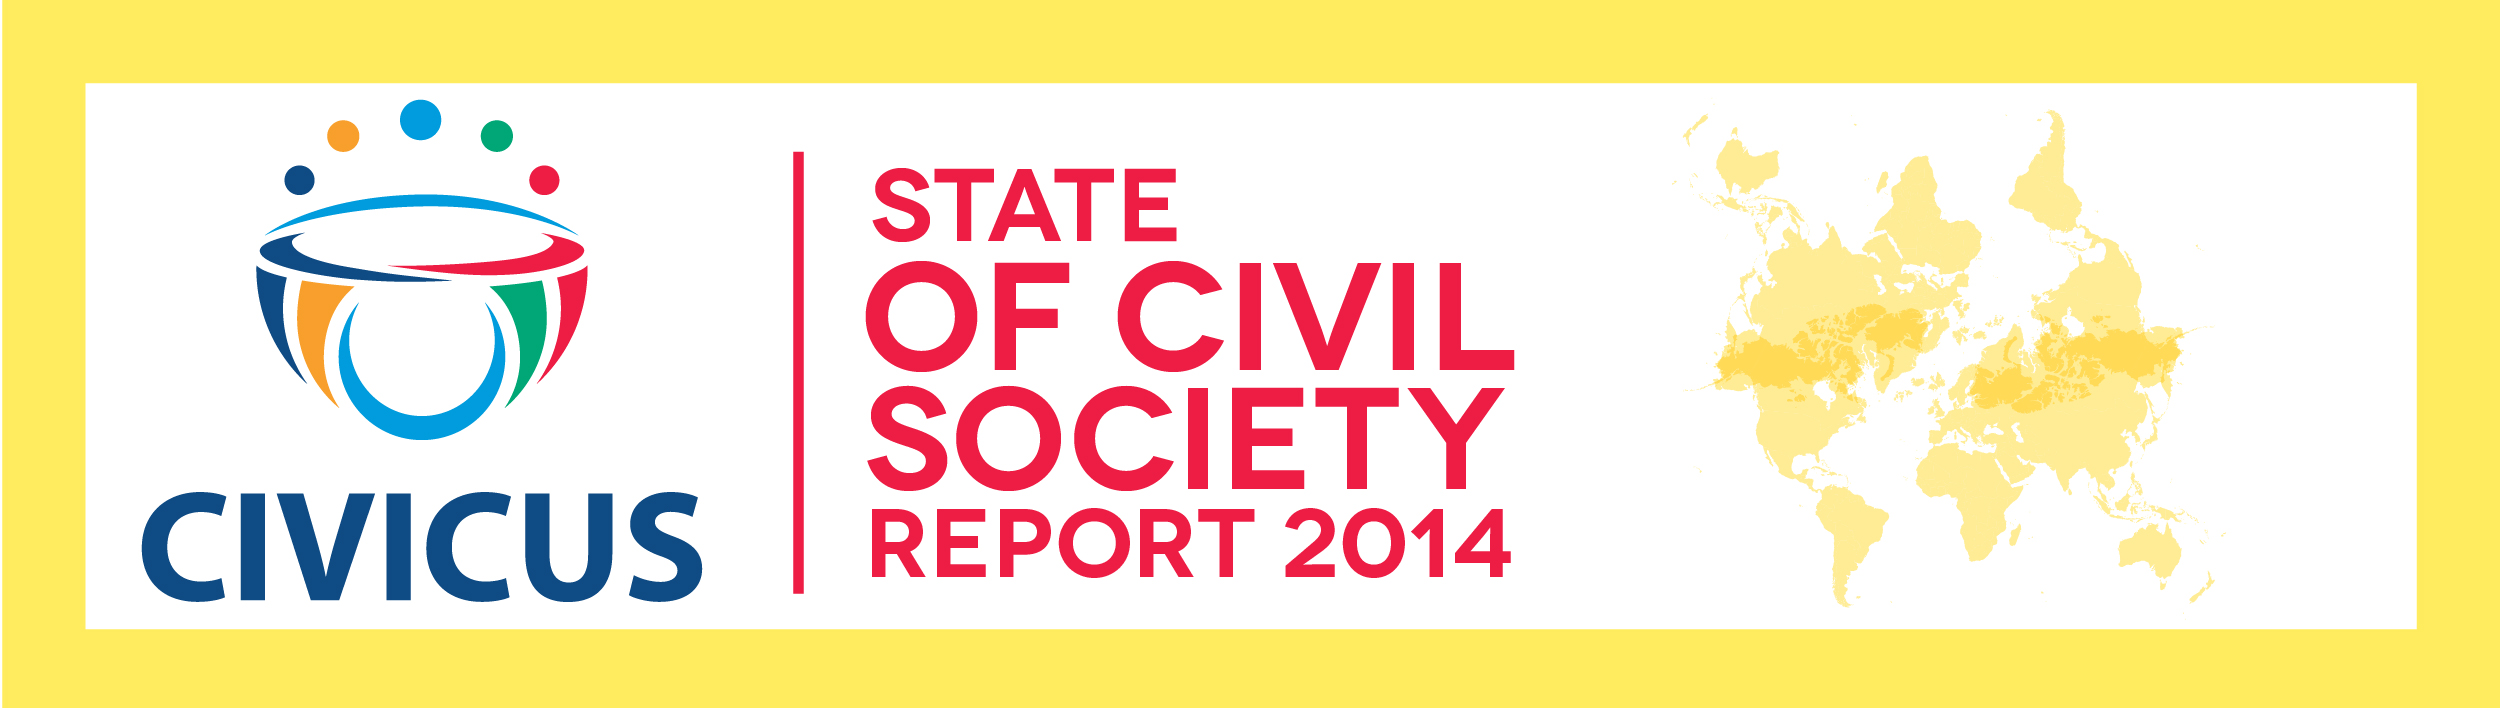 State of civil society report 2014